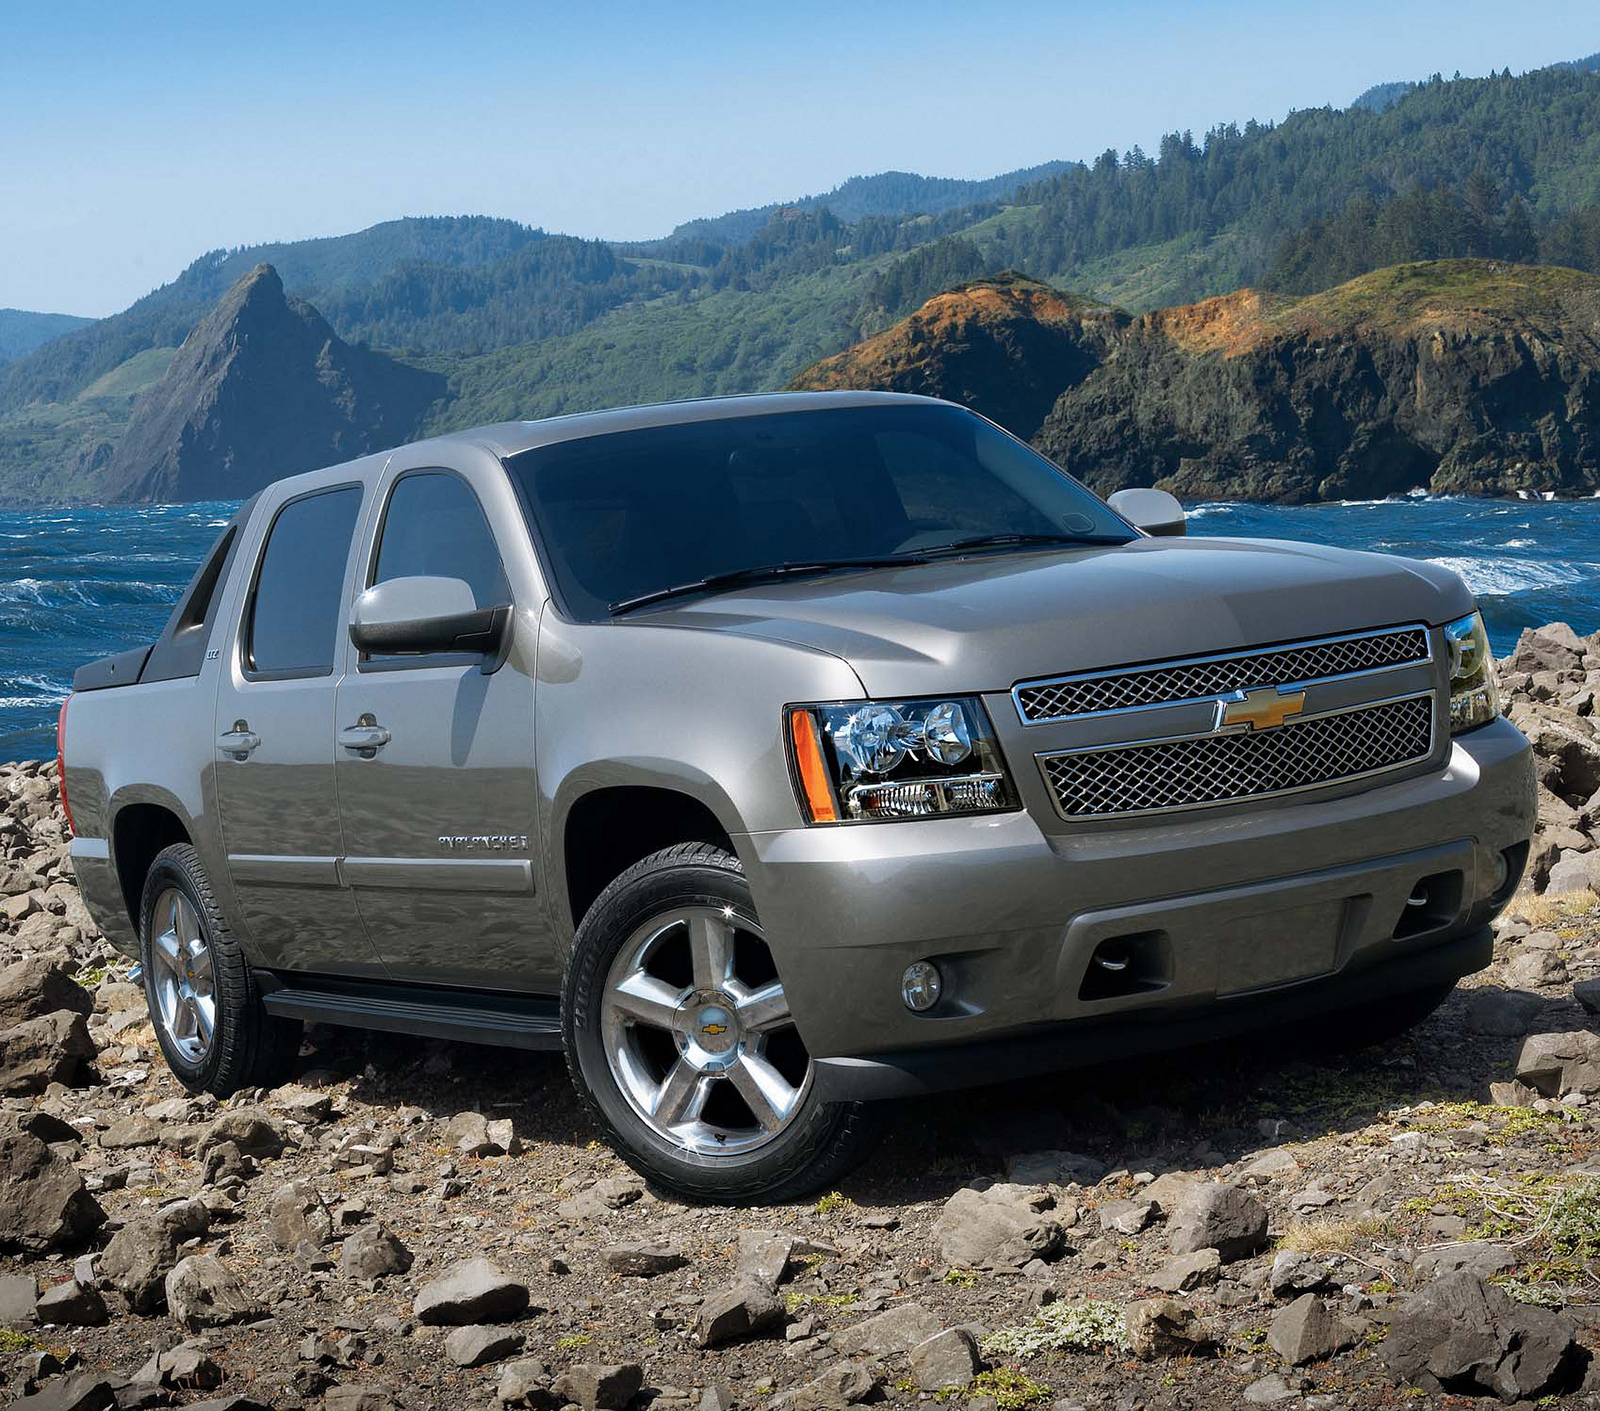 12703_6972805206_759ce81314_h-jpg Great Description About Chevy Avalanche 2013 with Amazing Pictures Cars Review